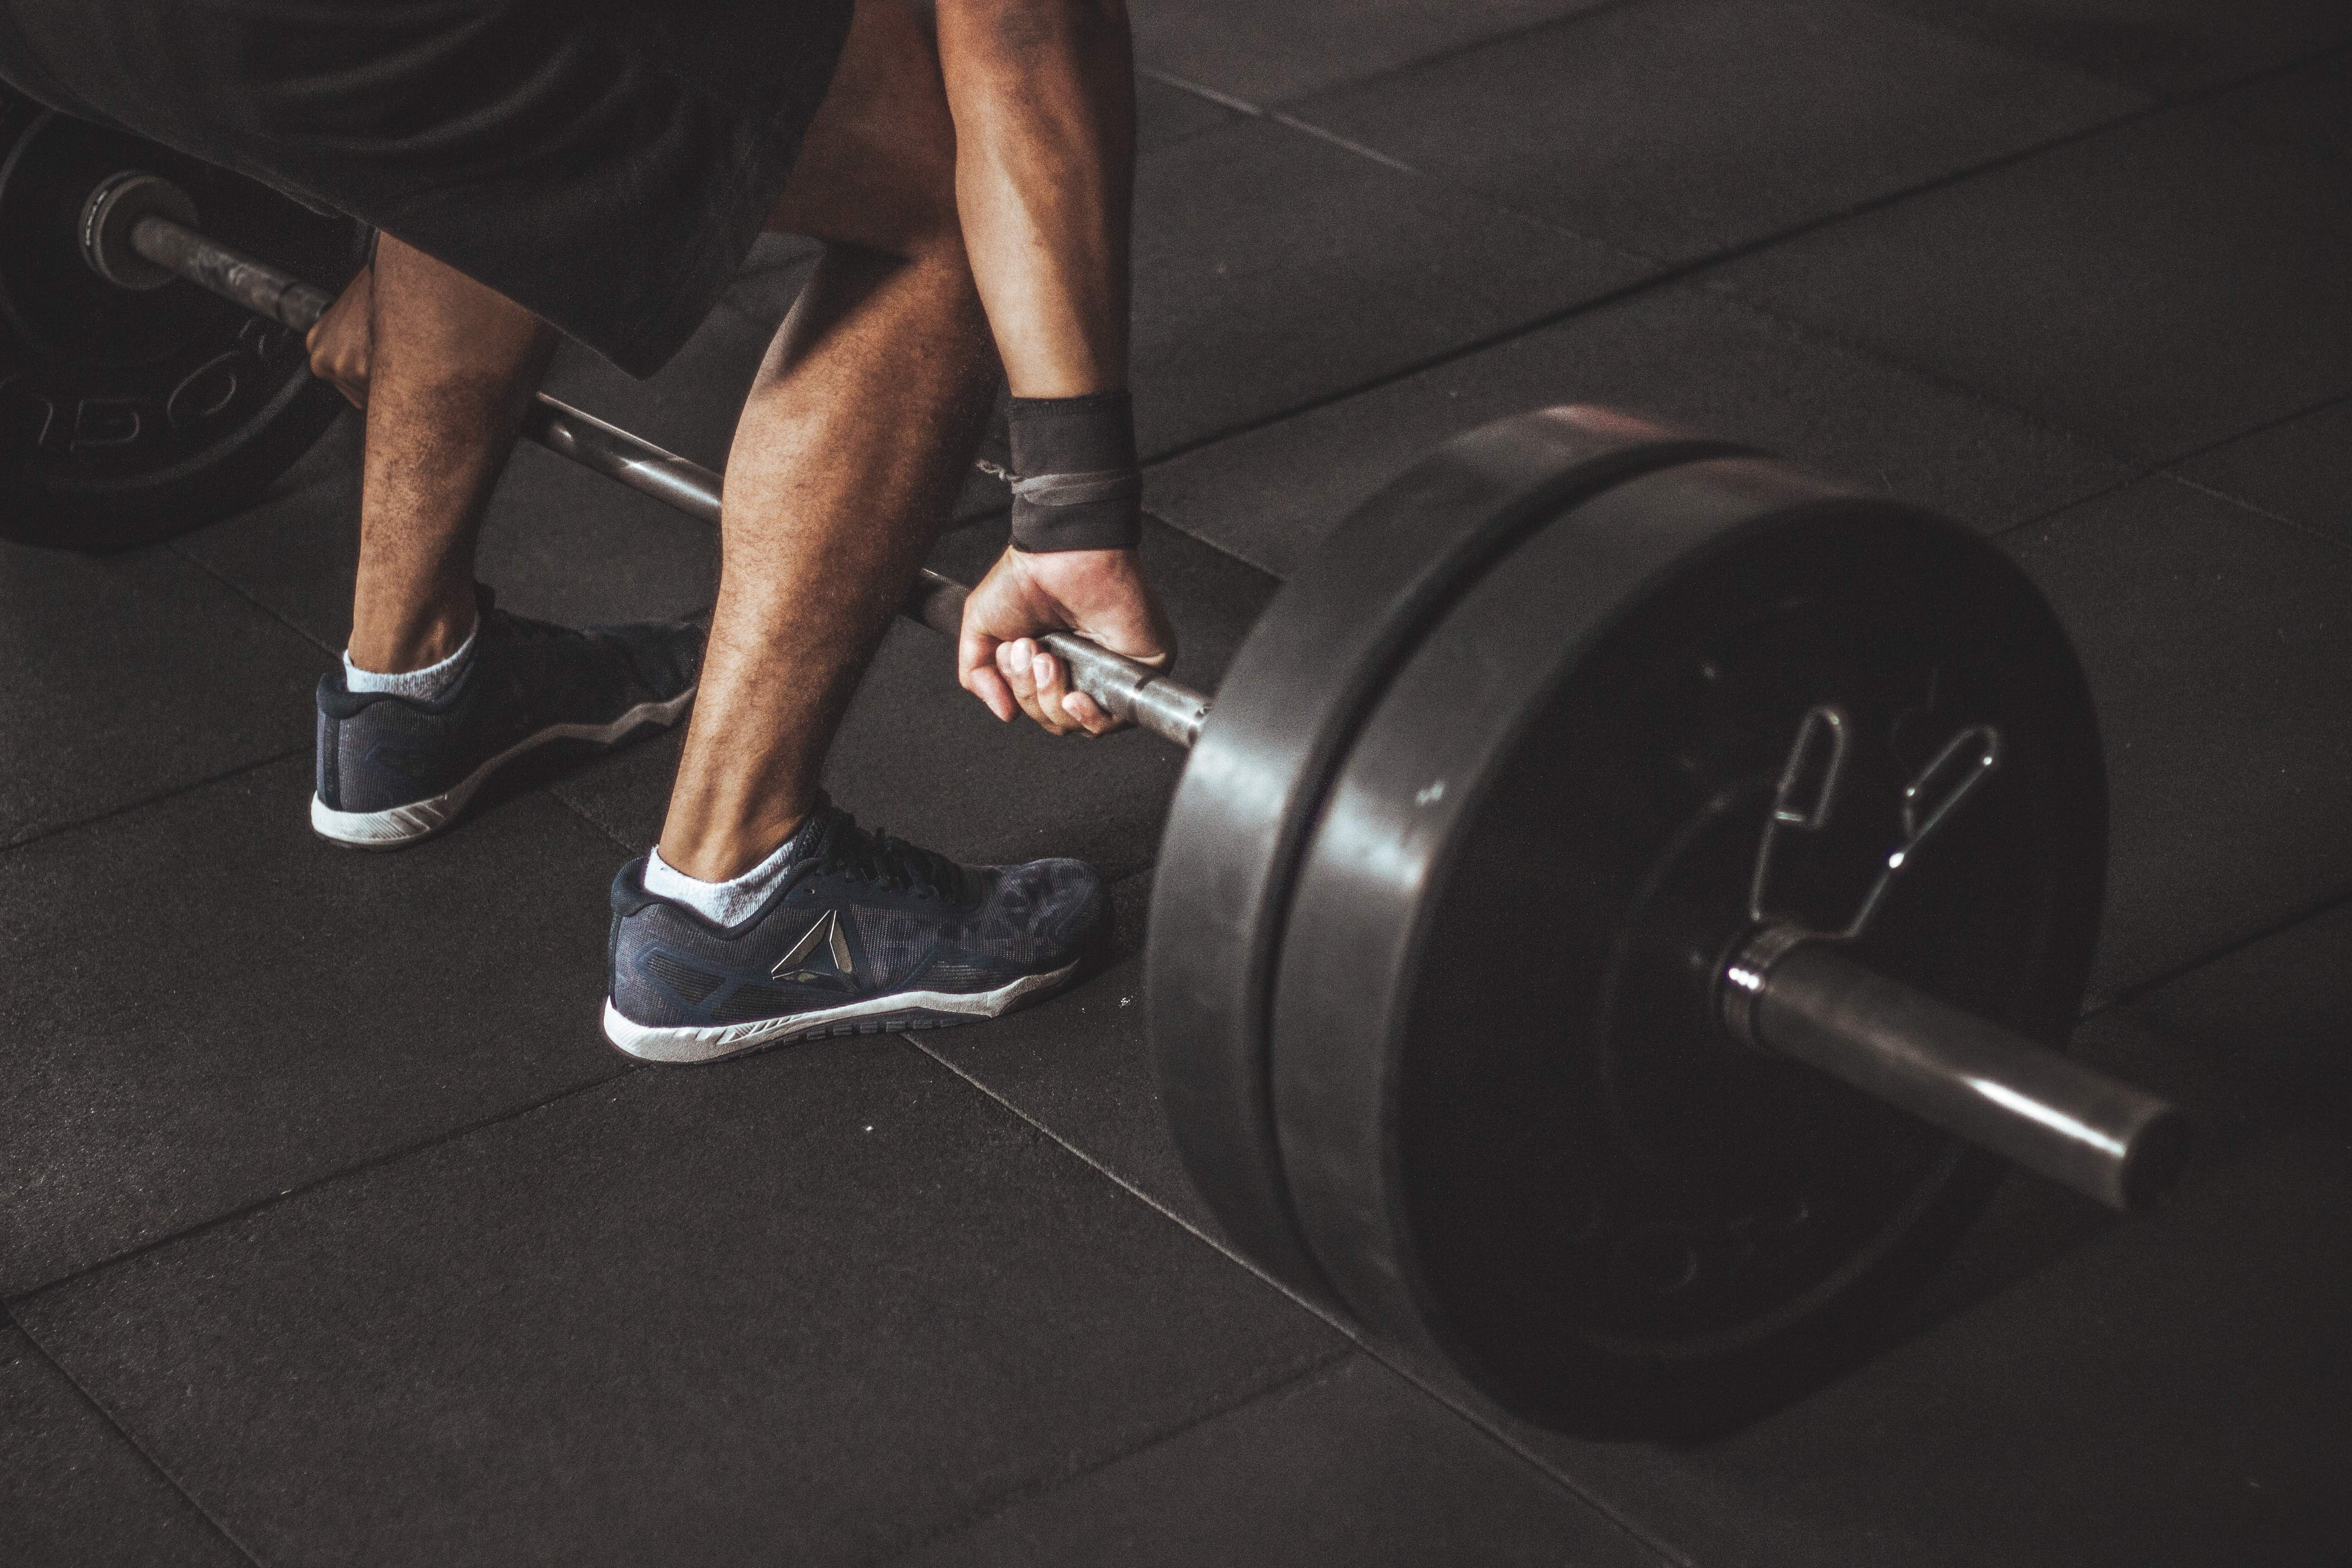 Not All Exercises Are Created Equal